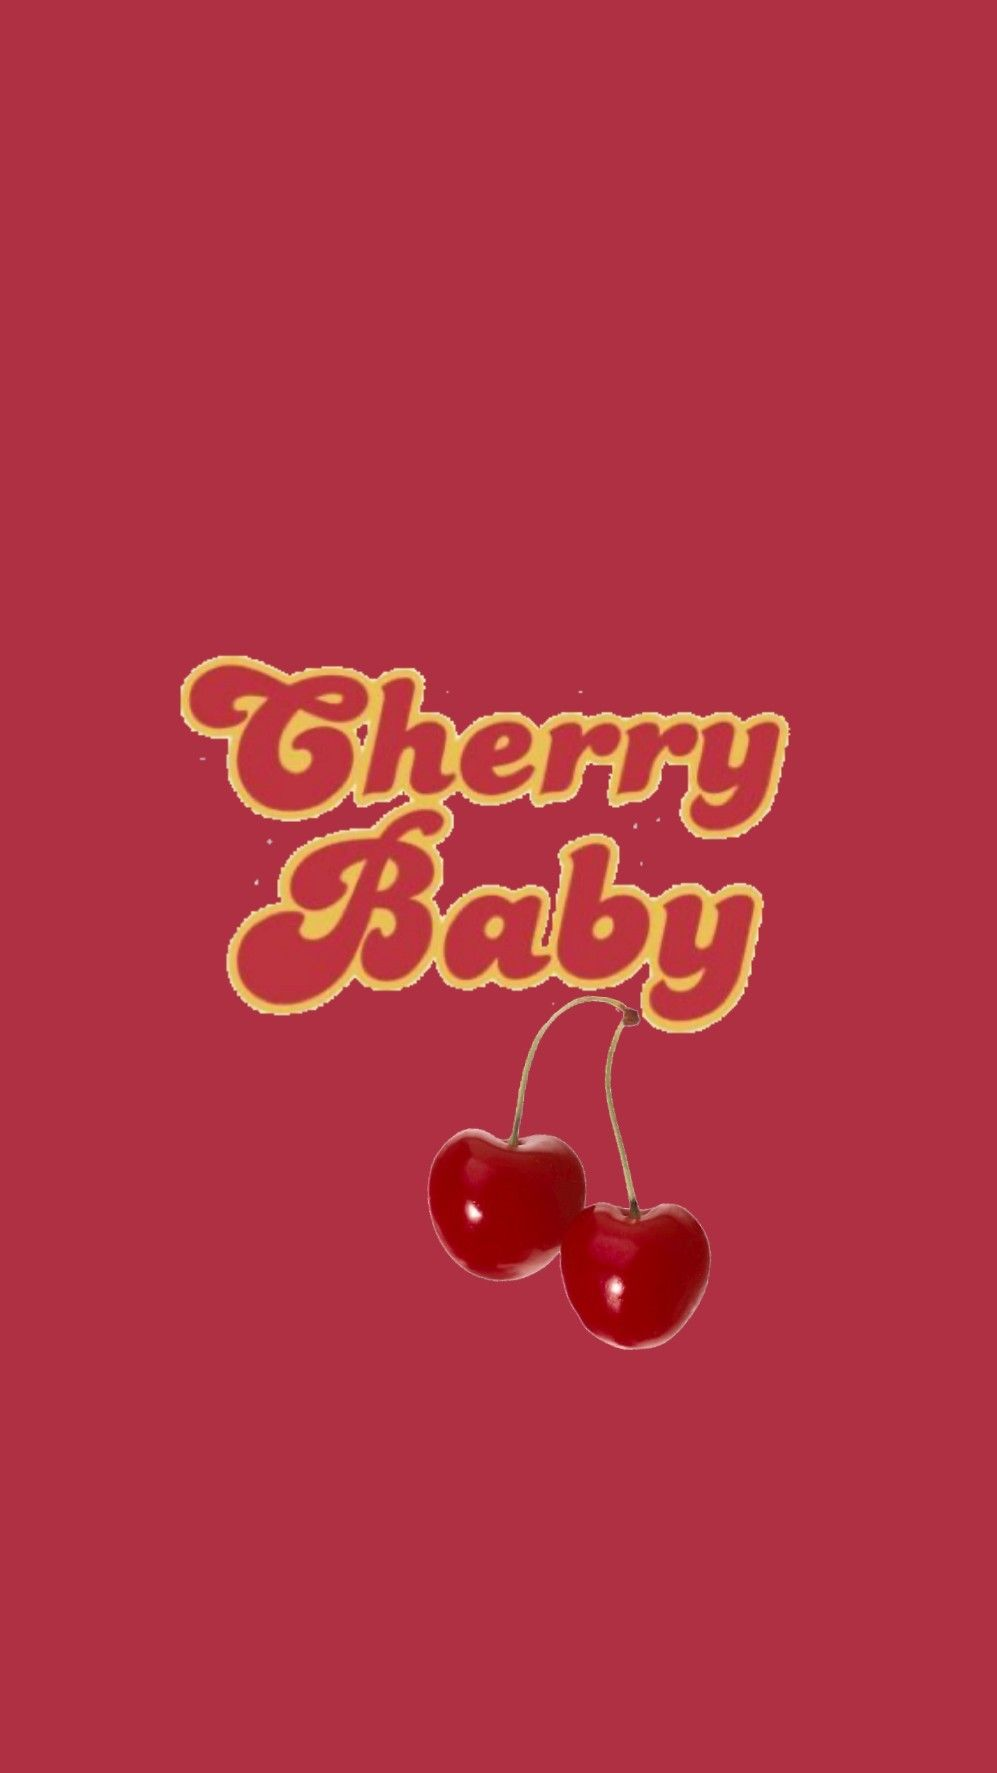 Wallpaper Cherry Cute Patterns Wallpaper Picture Collage Wall Aesthetic Iphone Wallpaper